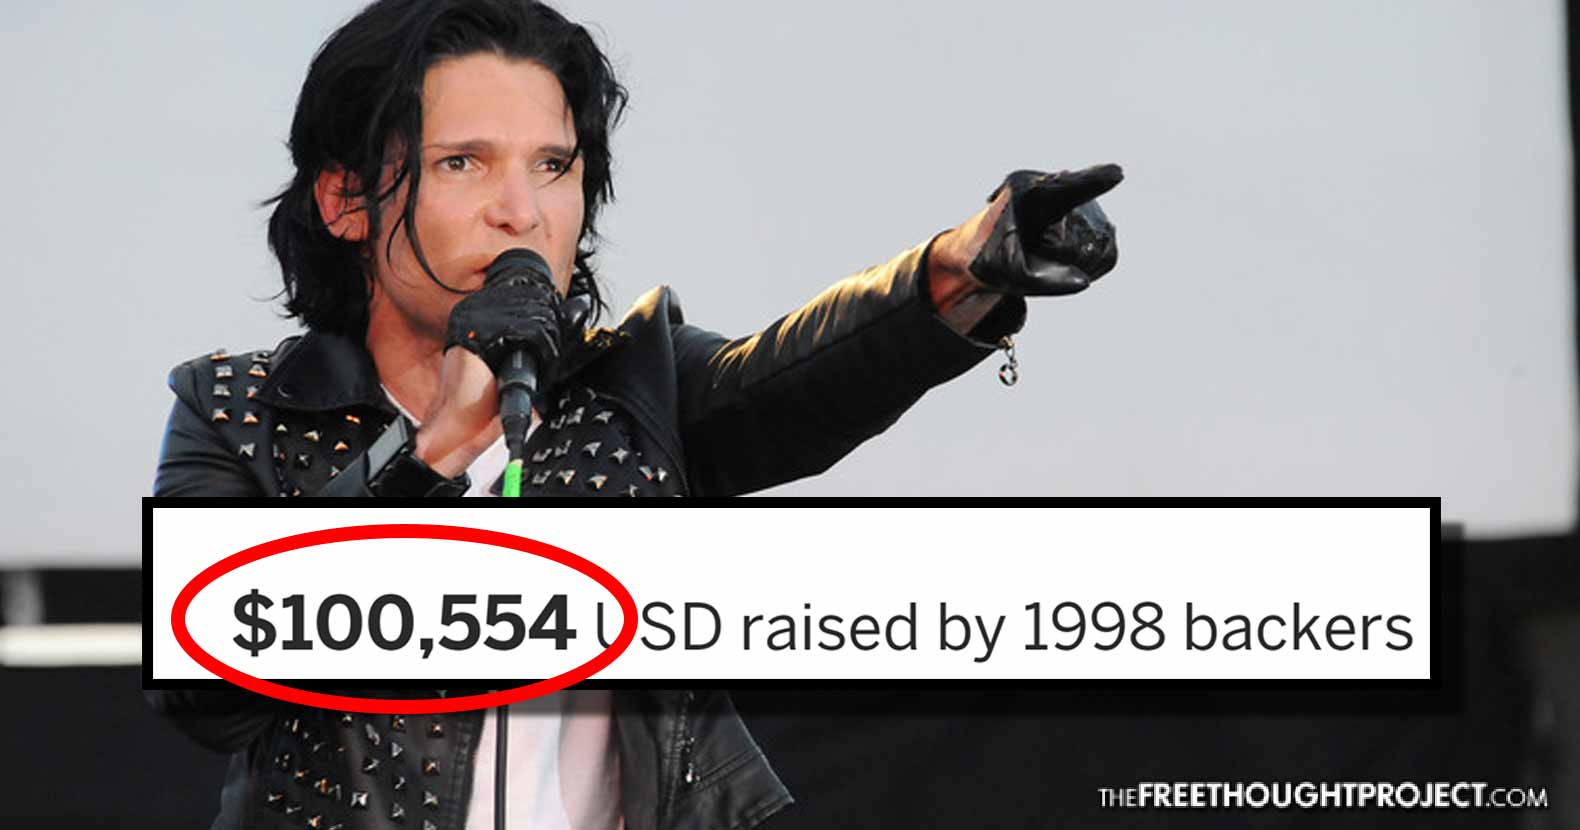 Goonies never say die. Corey Feldman is going all in to expose pedophiles in Hollywood. $100k raised in 24 hours.